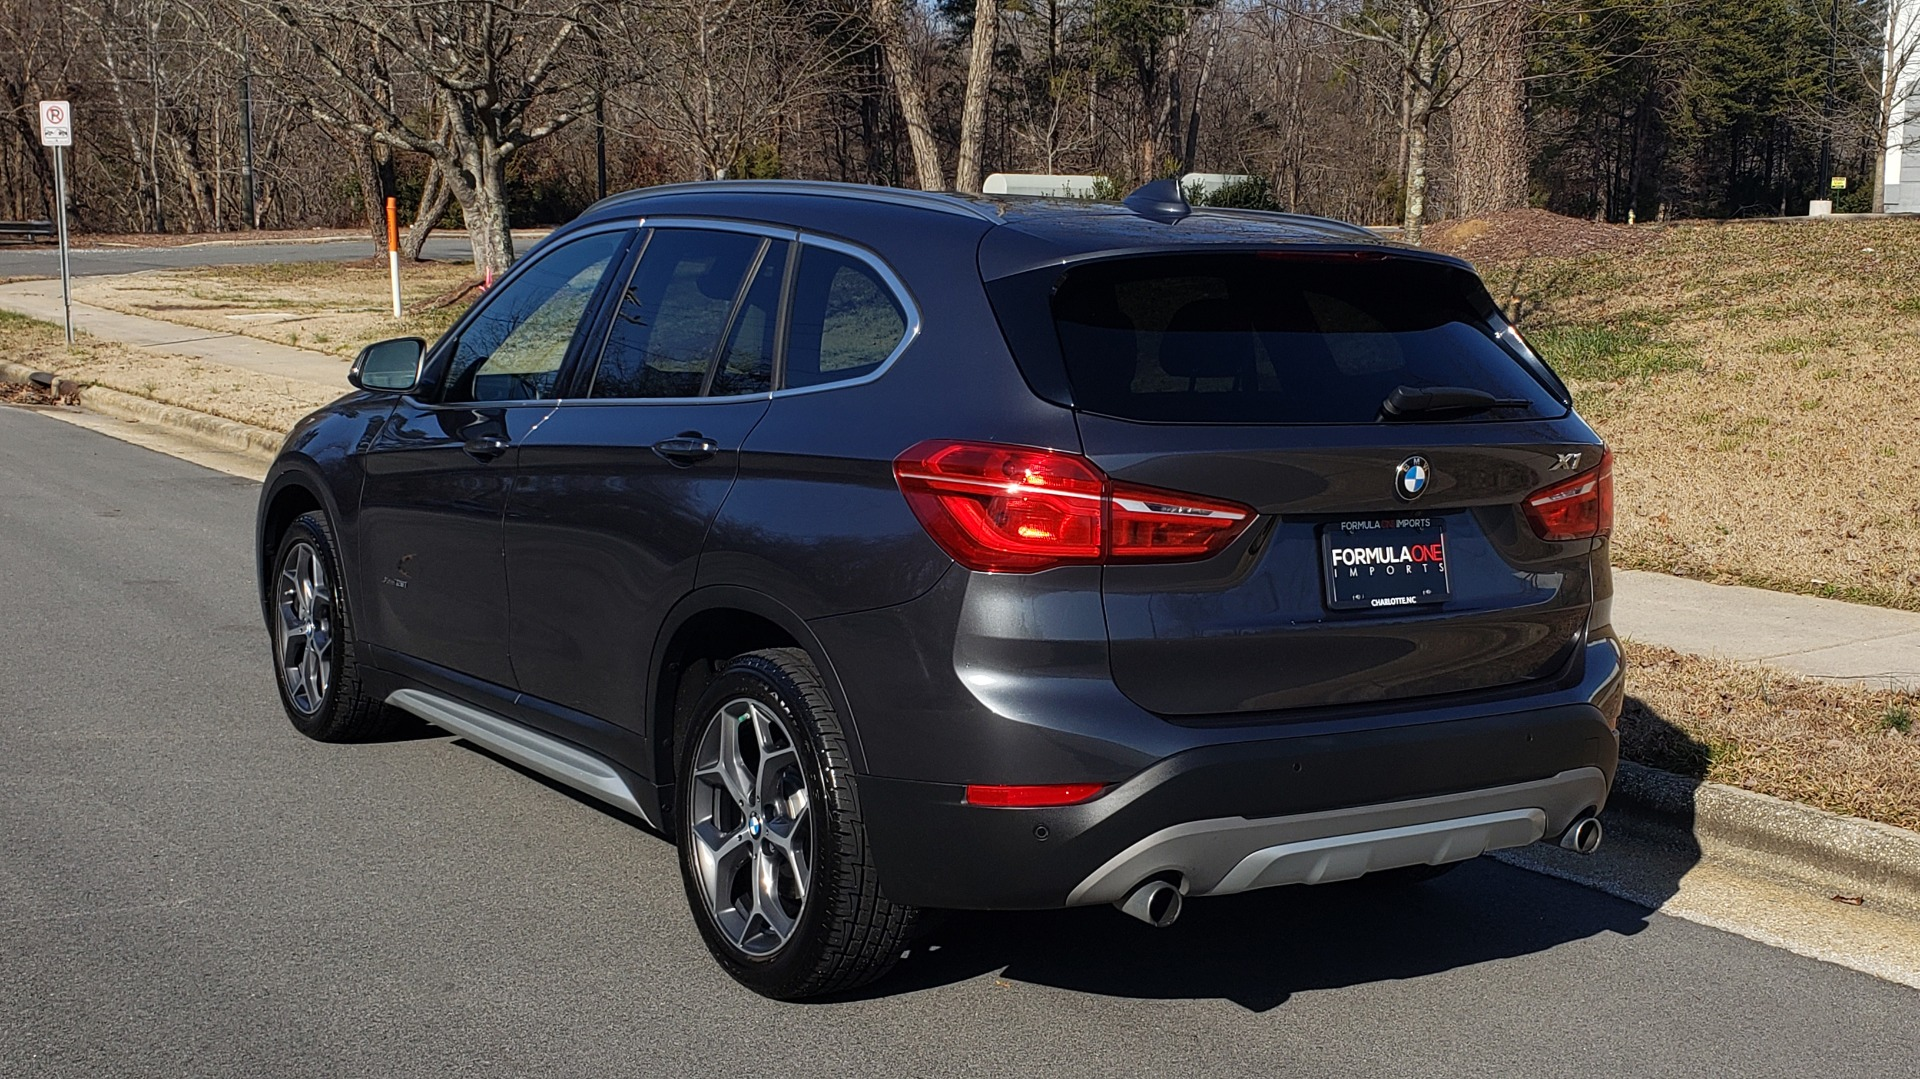 Used 2017 BMW X1 XDRIVE28I / PREM / TECH / DRVR ASST PLUS / COLD WTHR / REARVIEW for sale $26,995 at Formula Imports in Charlotte NC 28227 3